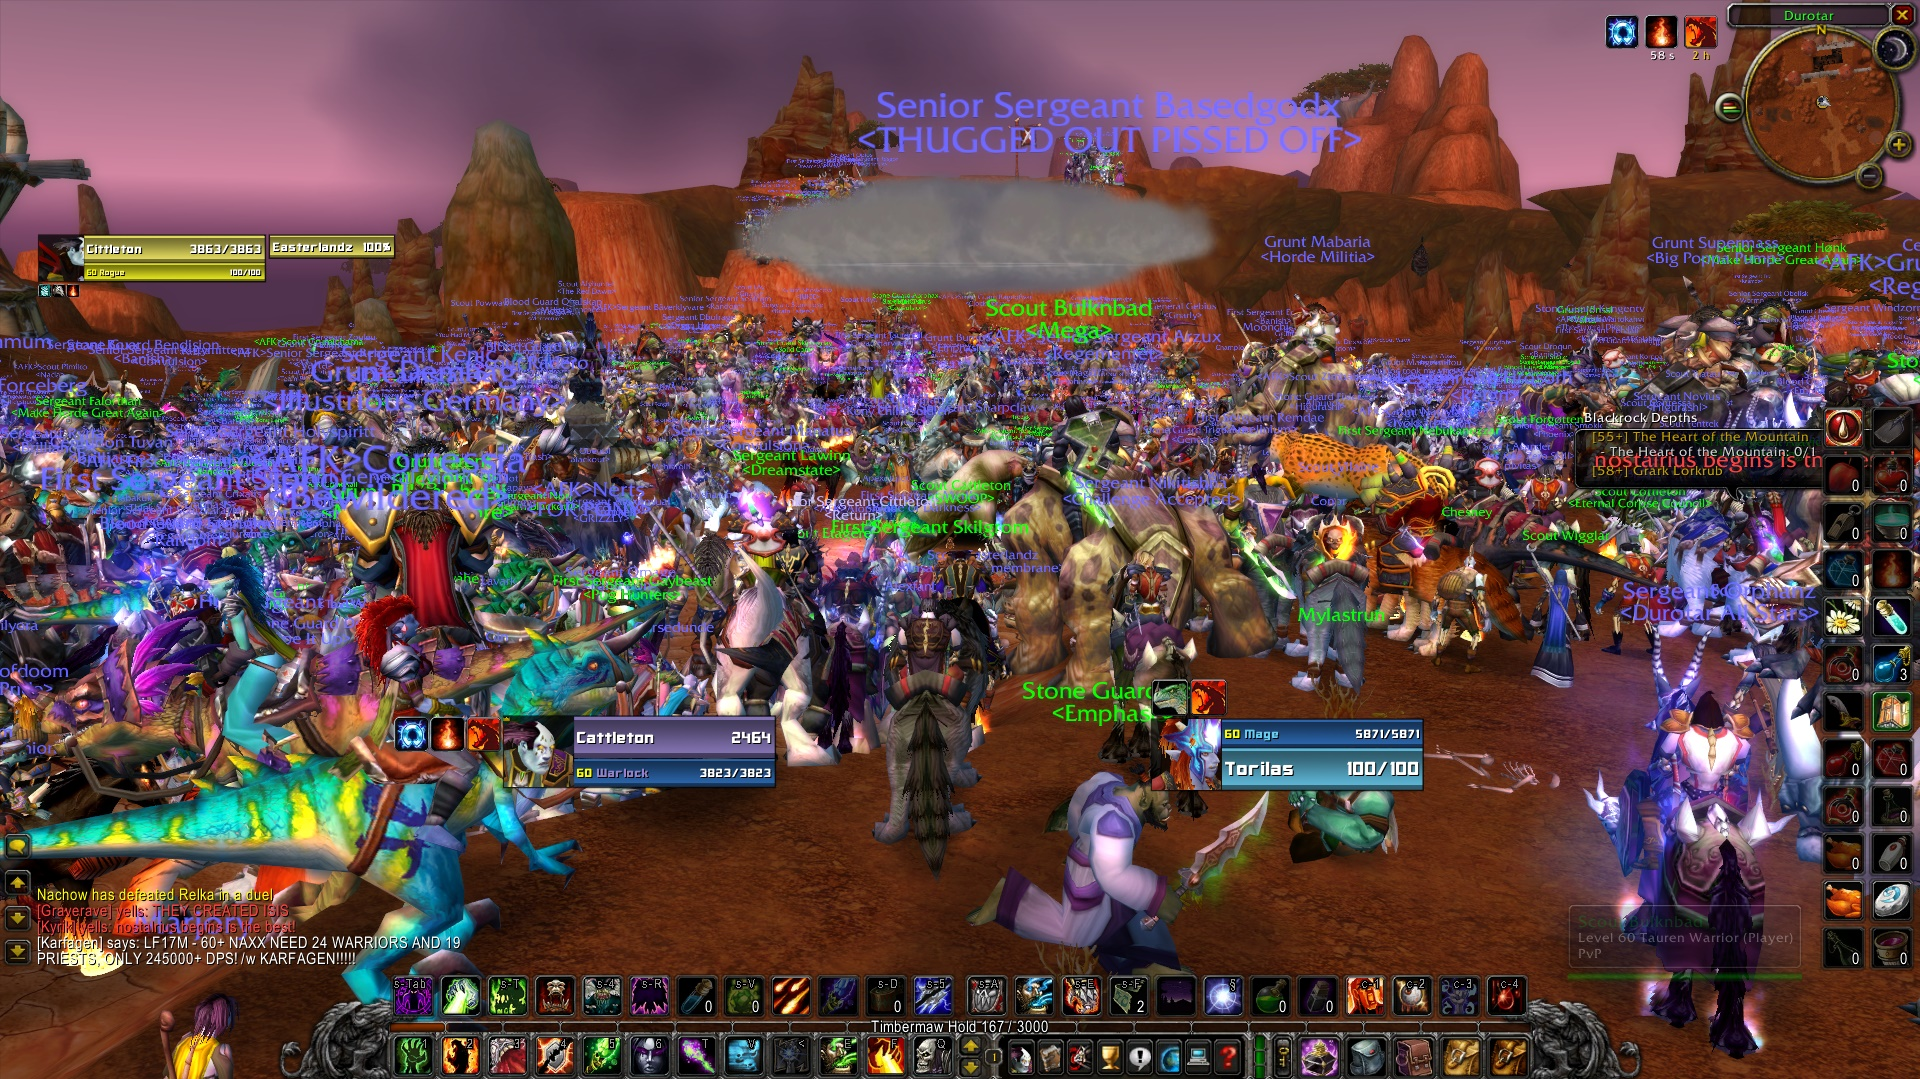 World of Warcraft fans bid farewell to largest legacy server before shutdown